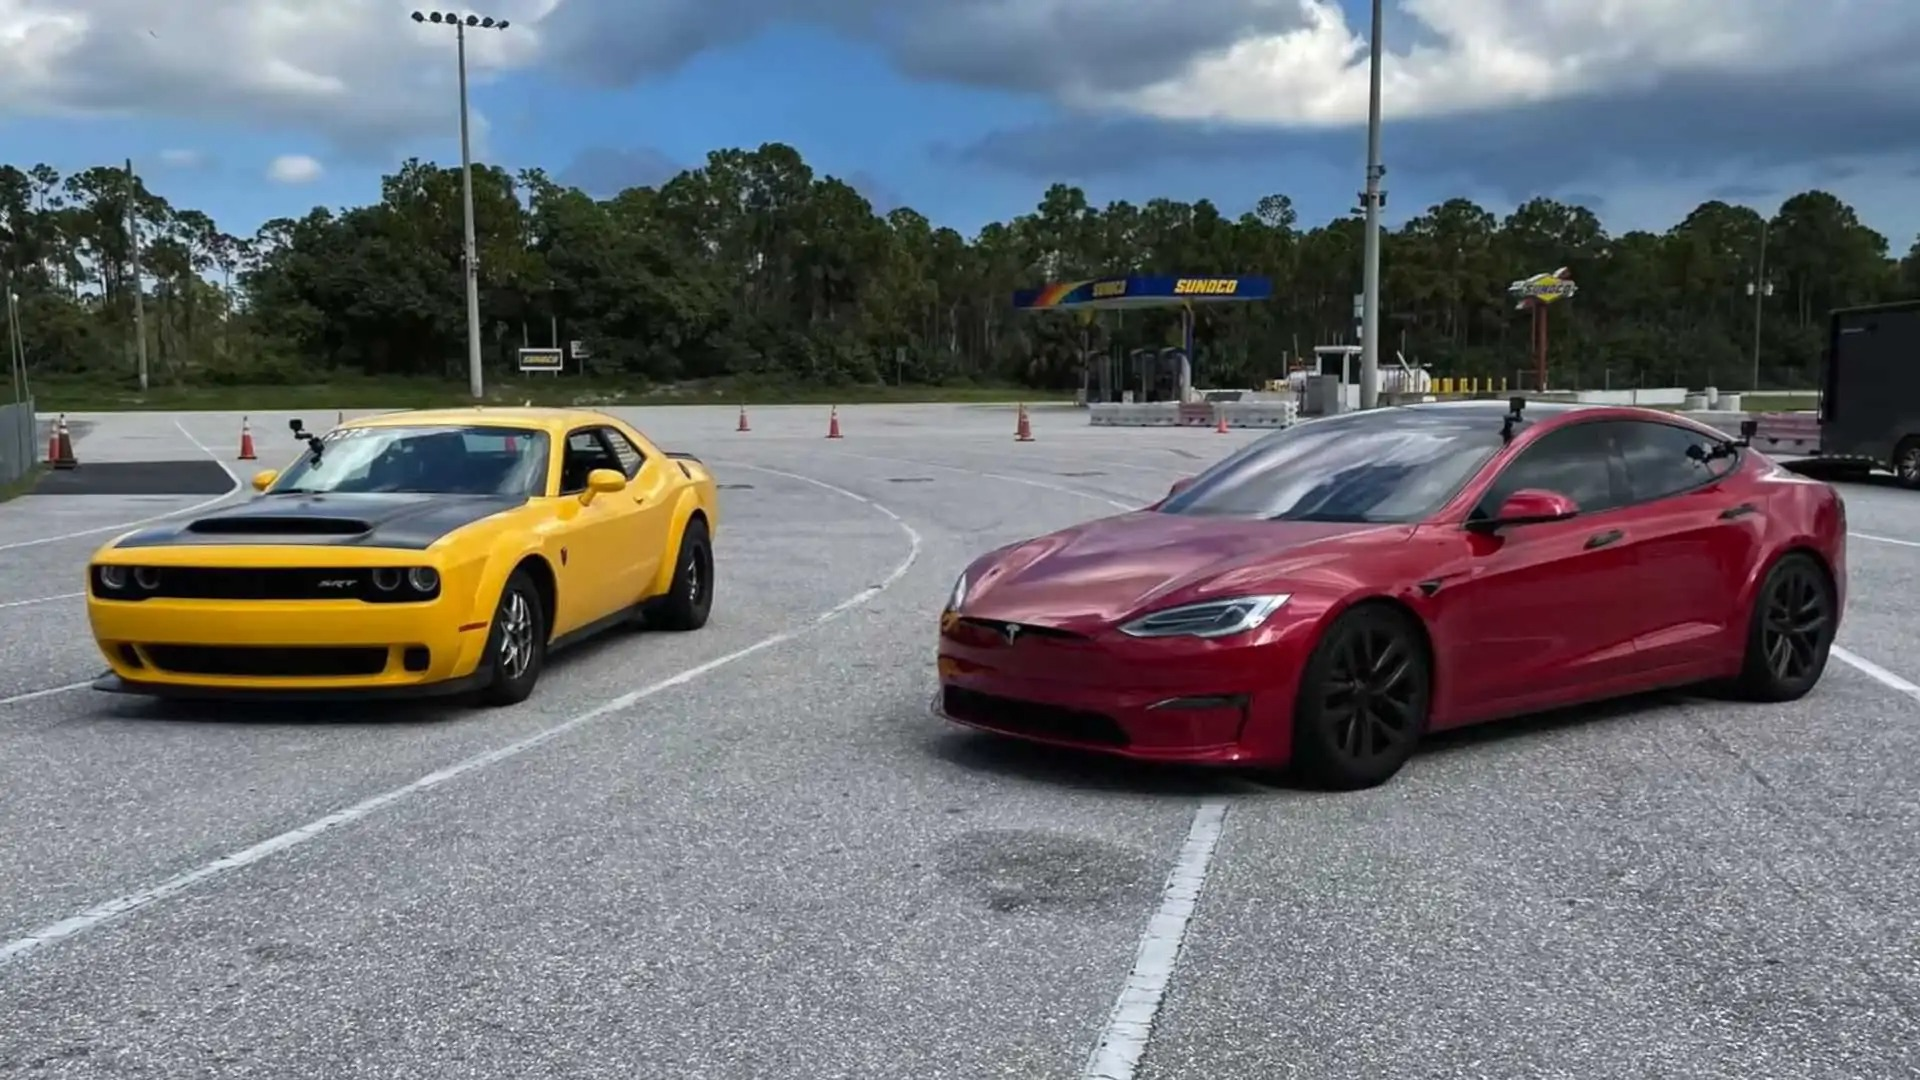 When Dodge fans learned about the company's intention to introduce an electric muscle car, many criticized the idea for trying to achieve mutually exclusive things in one vehicle. As this video by DragTimes clearly shows, however, the Demon is just no longer a match to EVs.